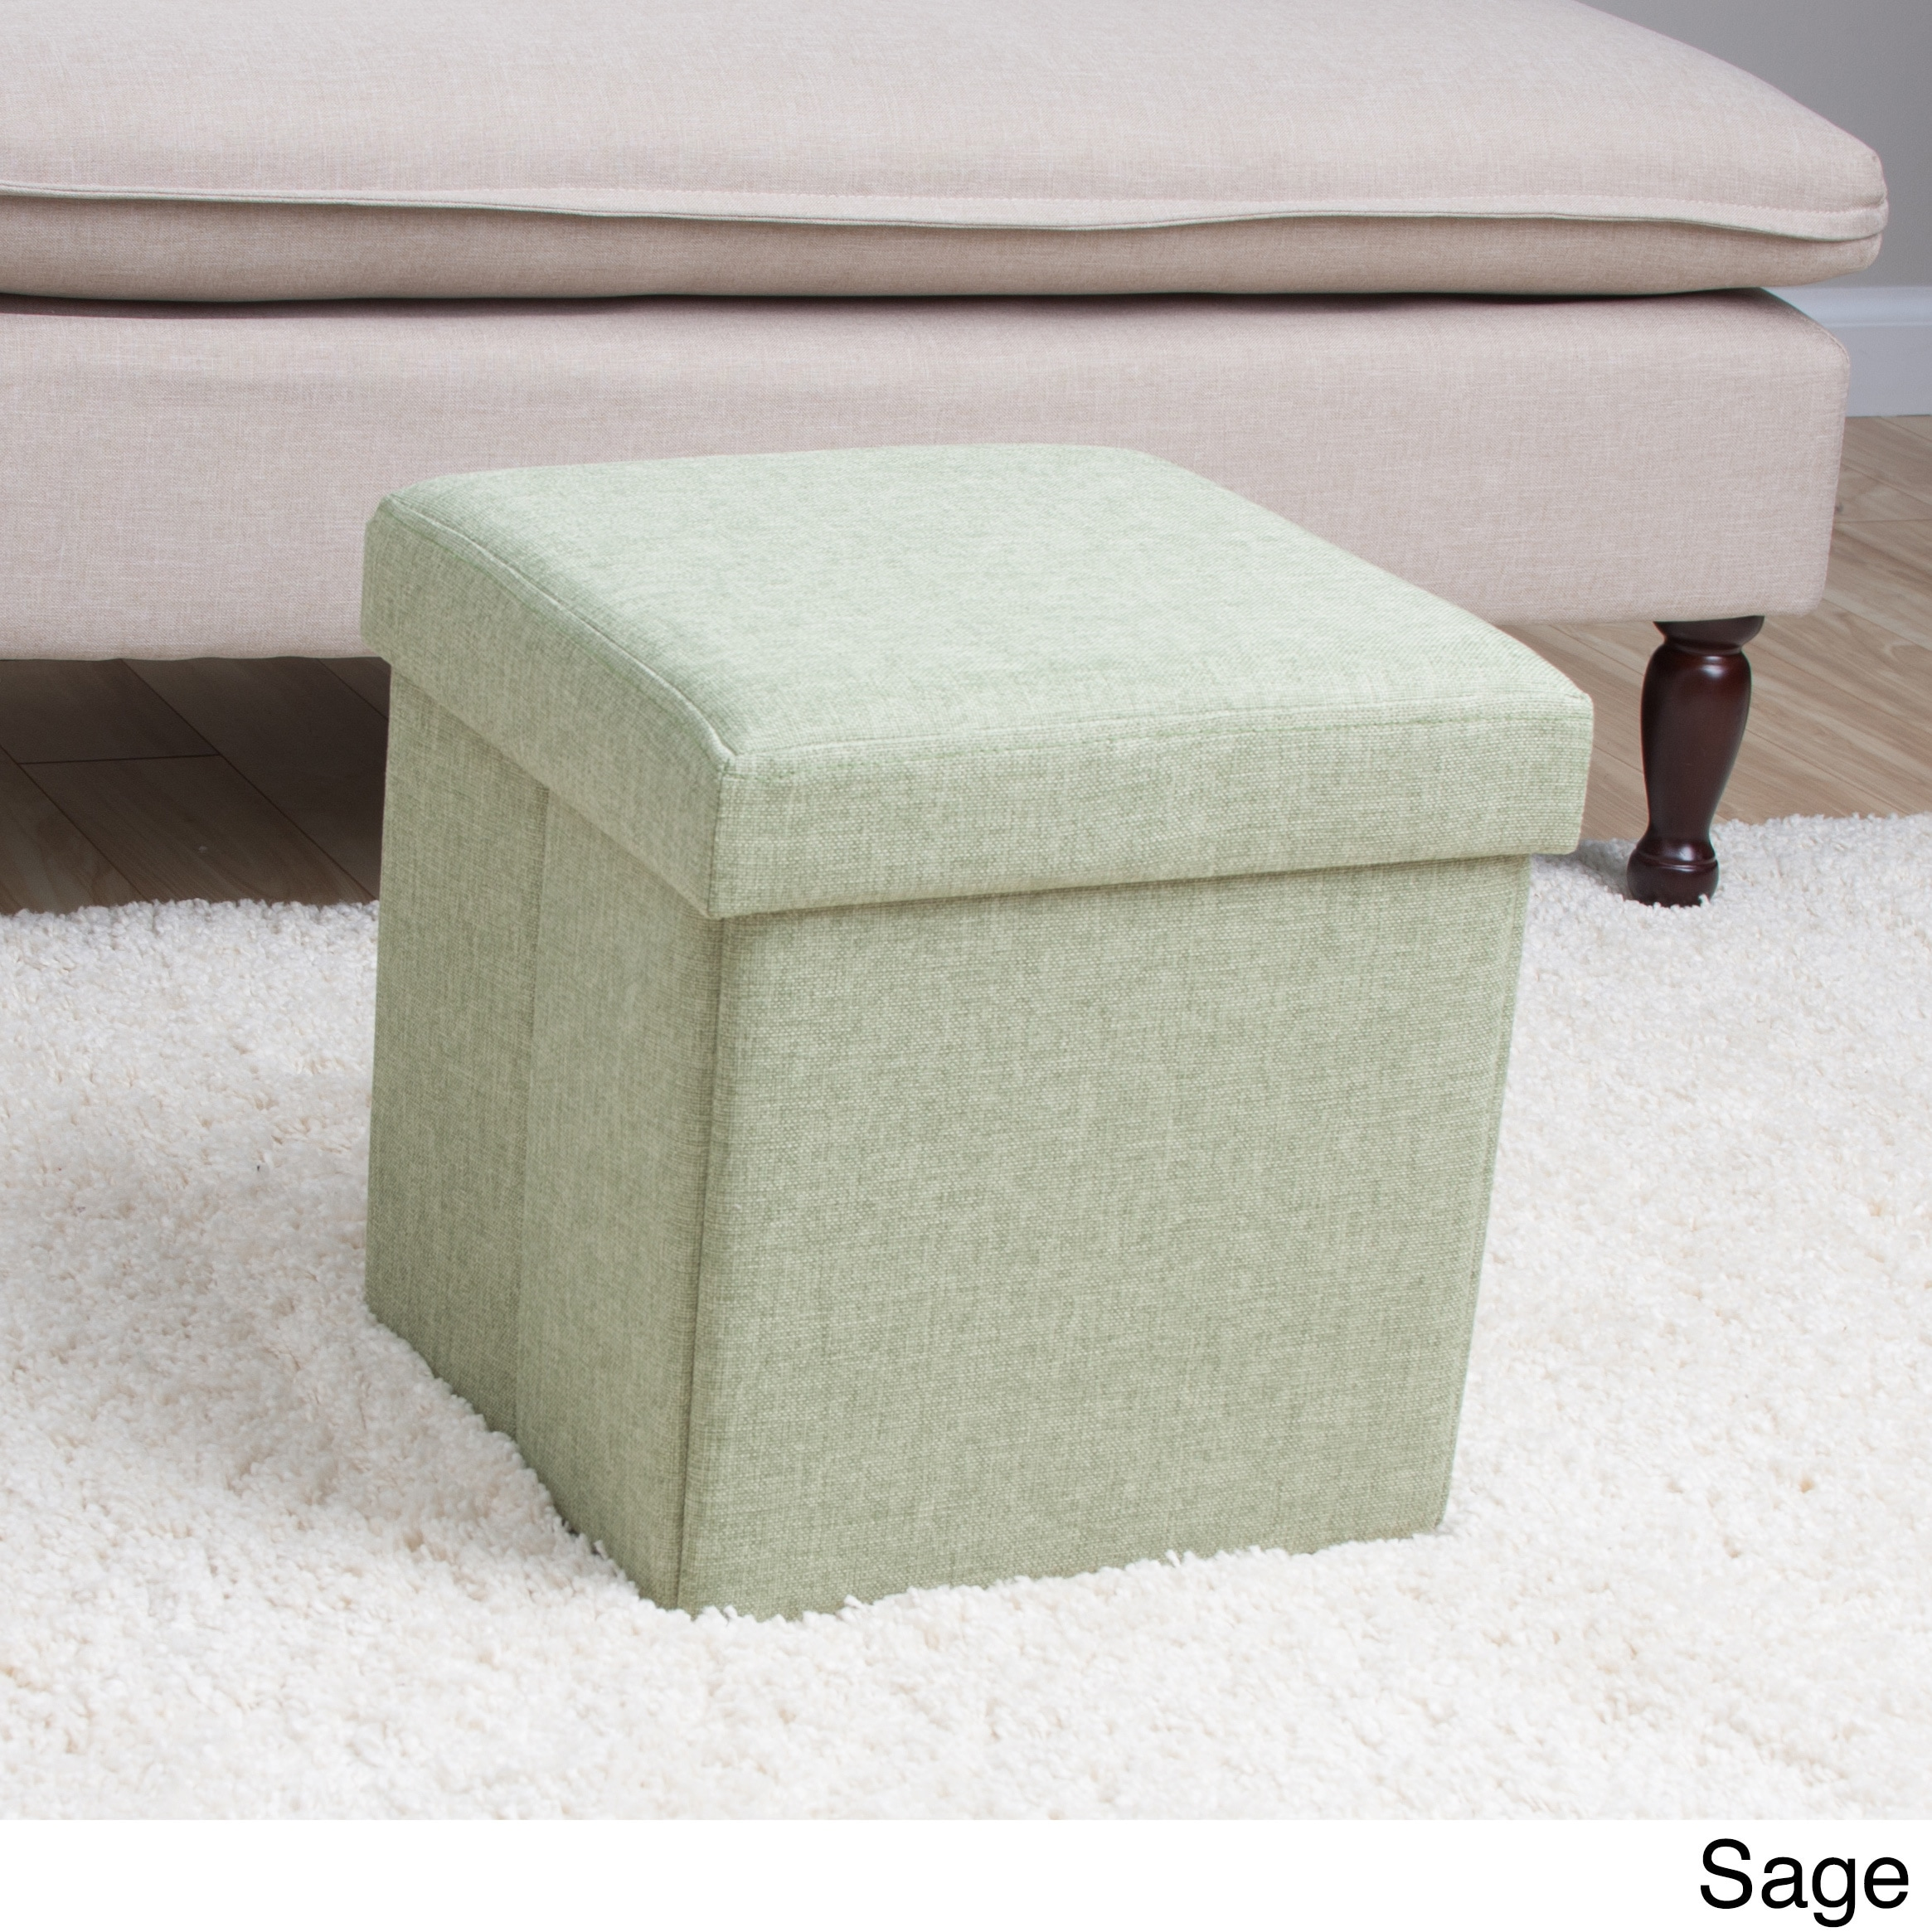 Square Folding Fabric Storage Ottoman - Free Shipping On Orders Over $45 -  Overstock.com - 15927197